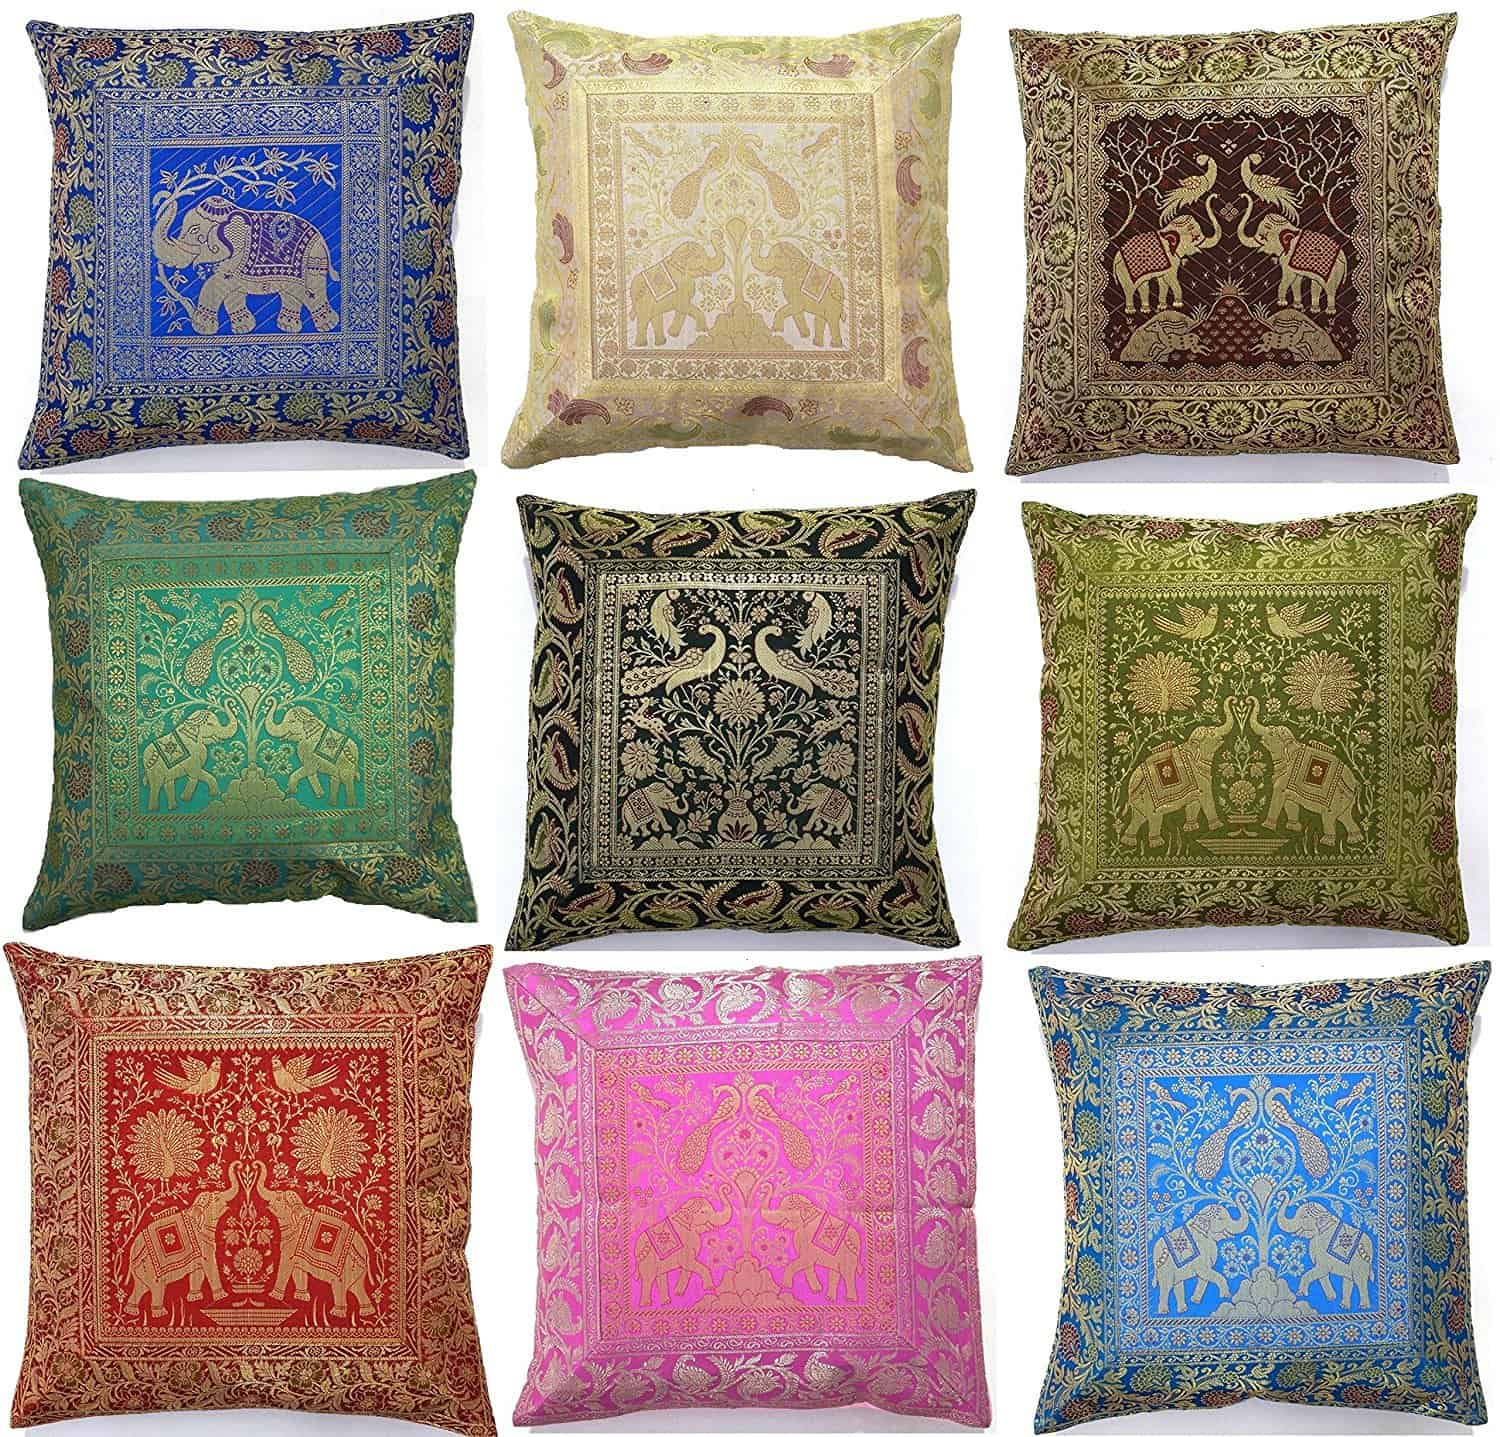 10 Pc Lot Square Silk Home Decor Cushion Cover, Indian Silk Brocade Pillow Cover , Handmade Banarsi Pillow Cover 16 X 16 Inch